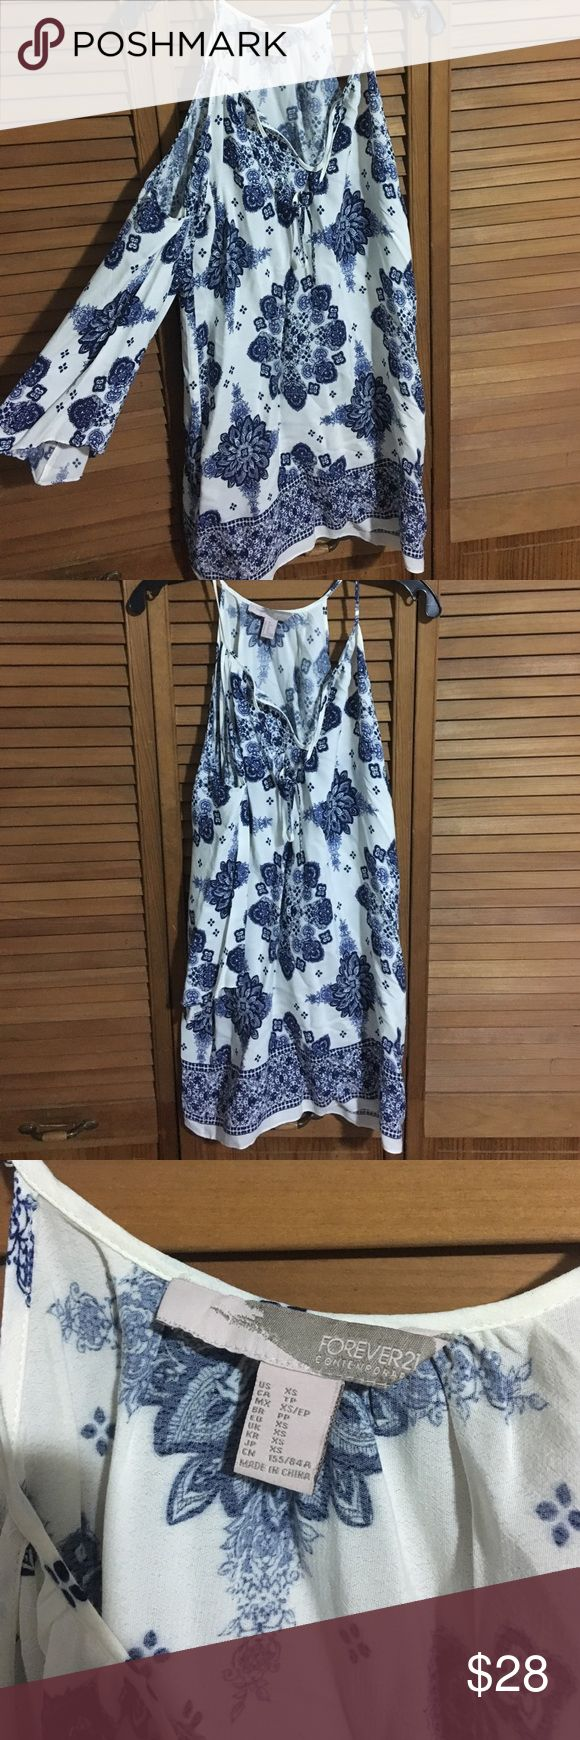 Forever 21 Floral Dress with Sleeves Forever 21 Floral Pattern Dress with sleeves size XS Forever 21 Dresses